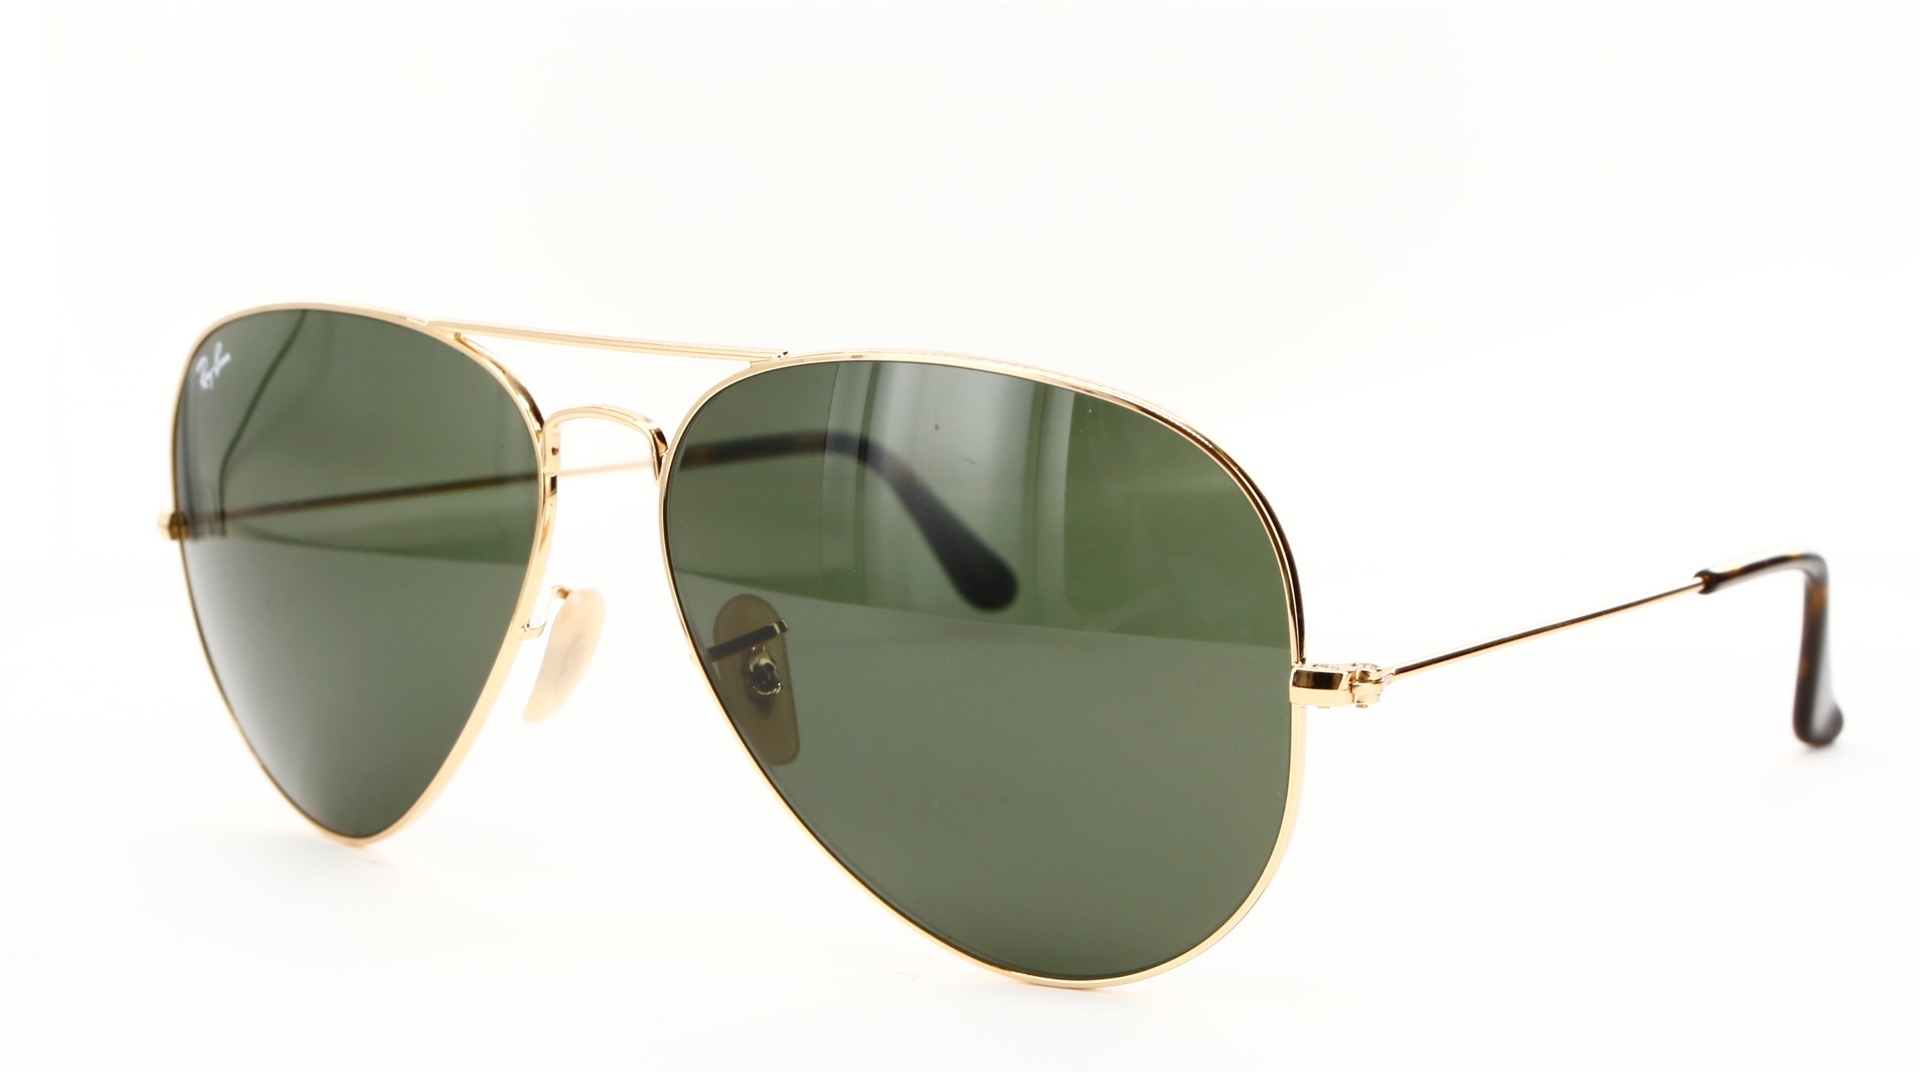 Ray-Ban - ref: 74738